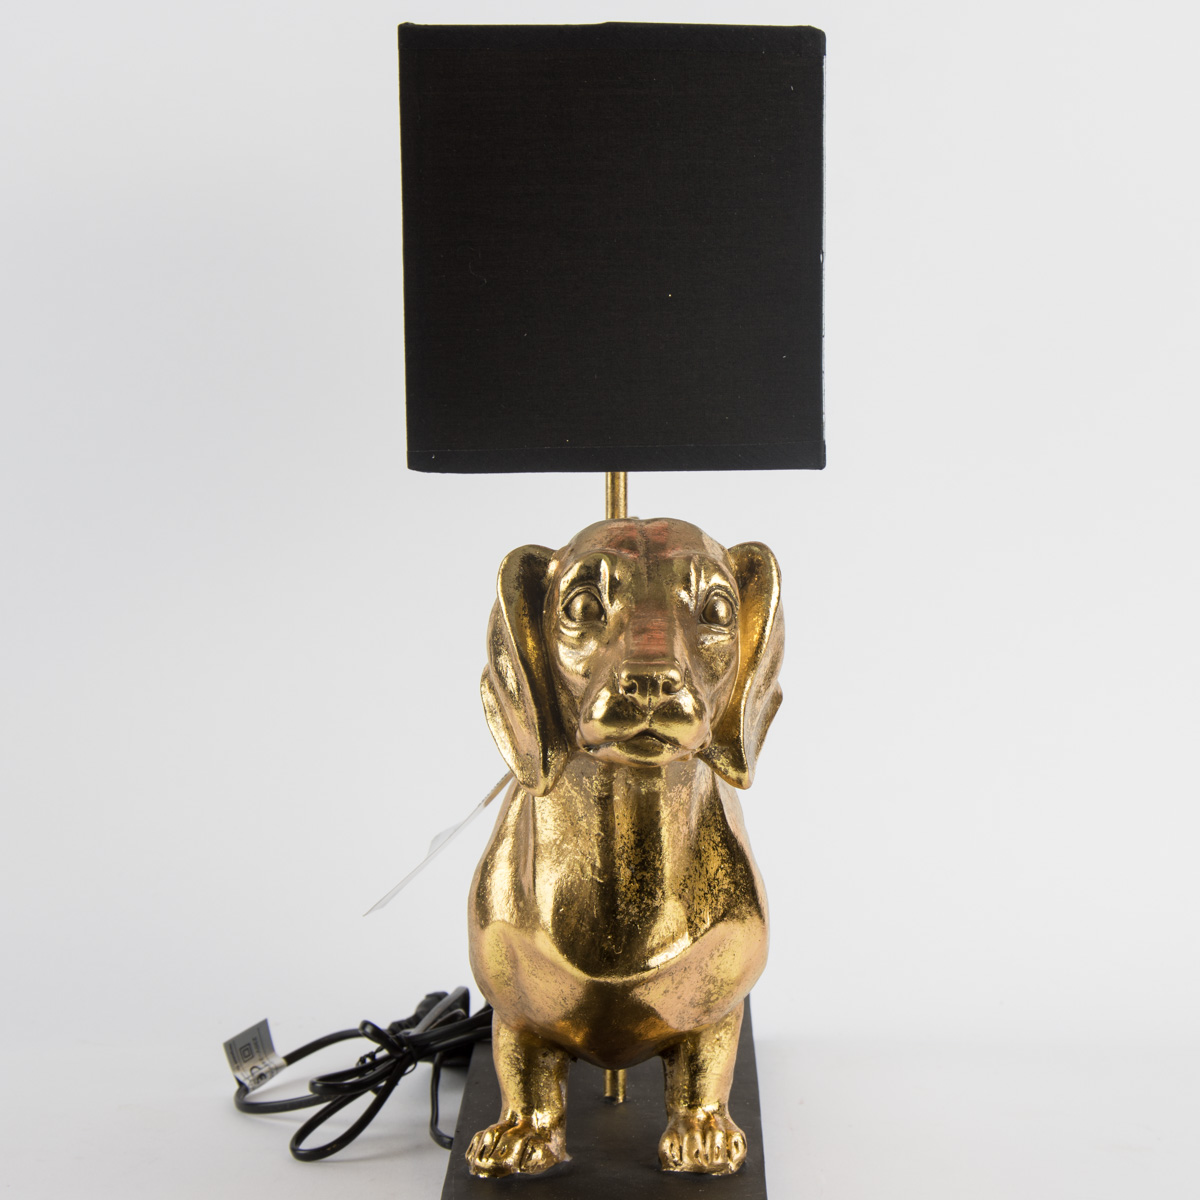 lampe tischlampe dackel schwarz goldfarbig 60x48 5x14cm ebay. Black Bedroom Furniture Sets. Home Design Ideas